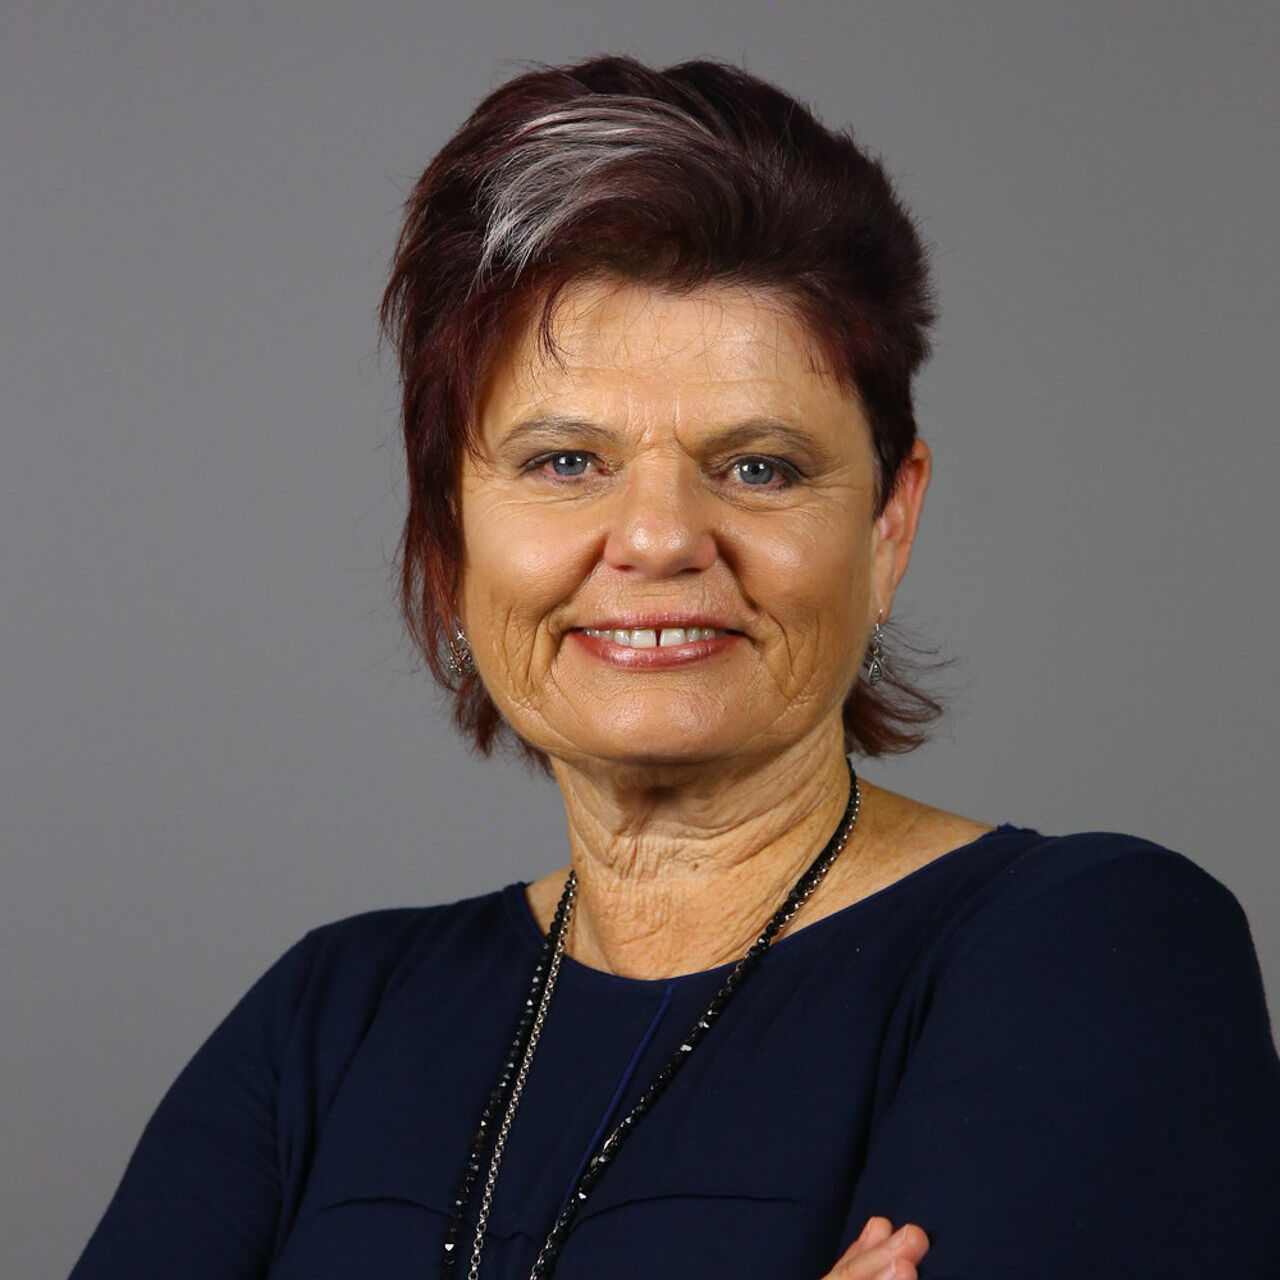 A picture of Vivien Maidaborn